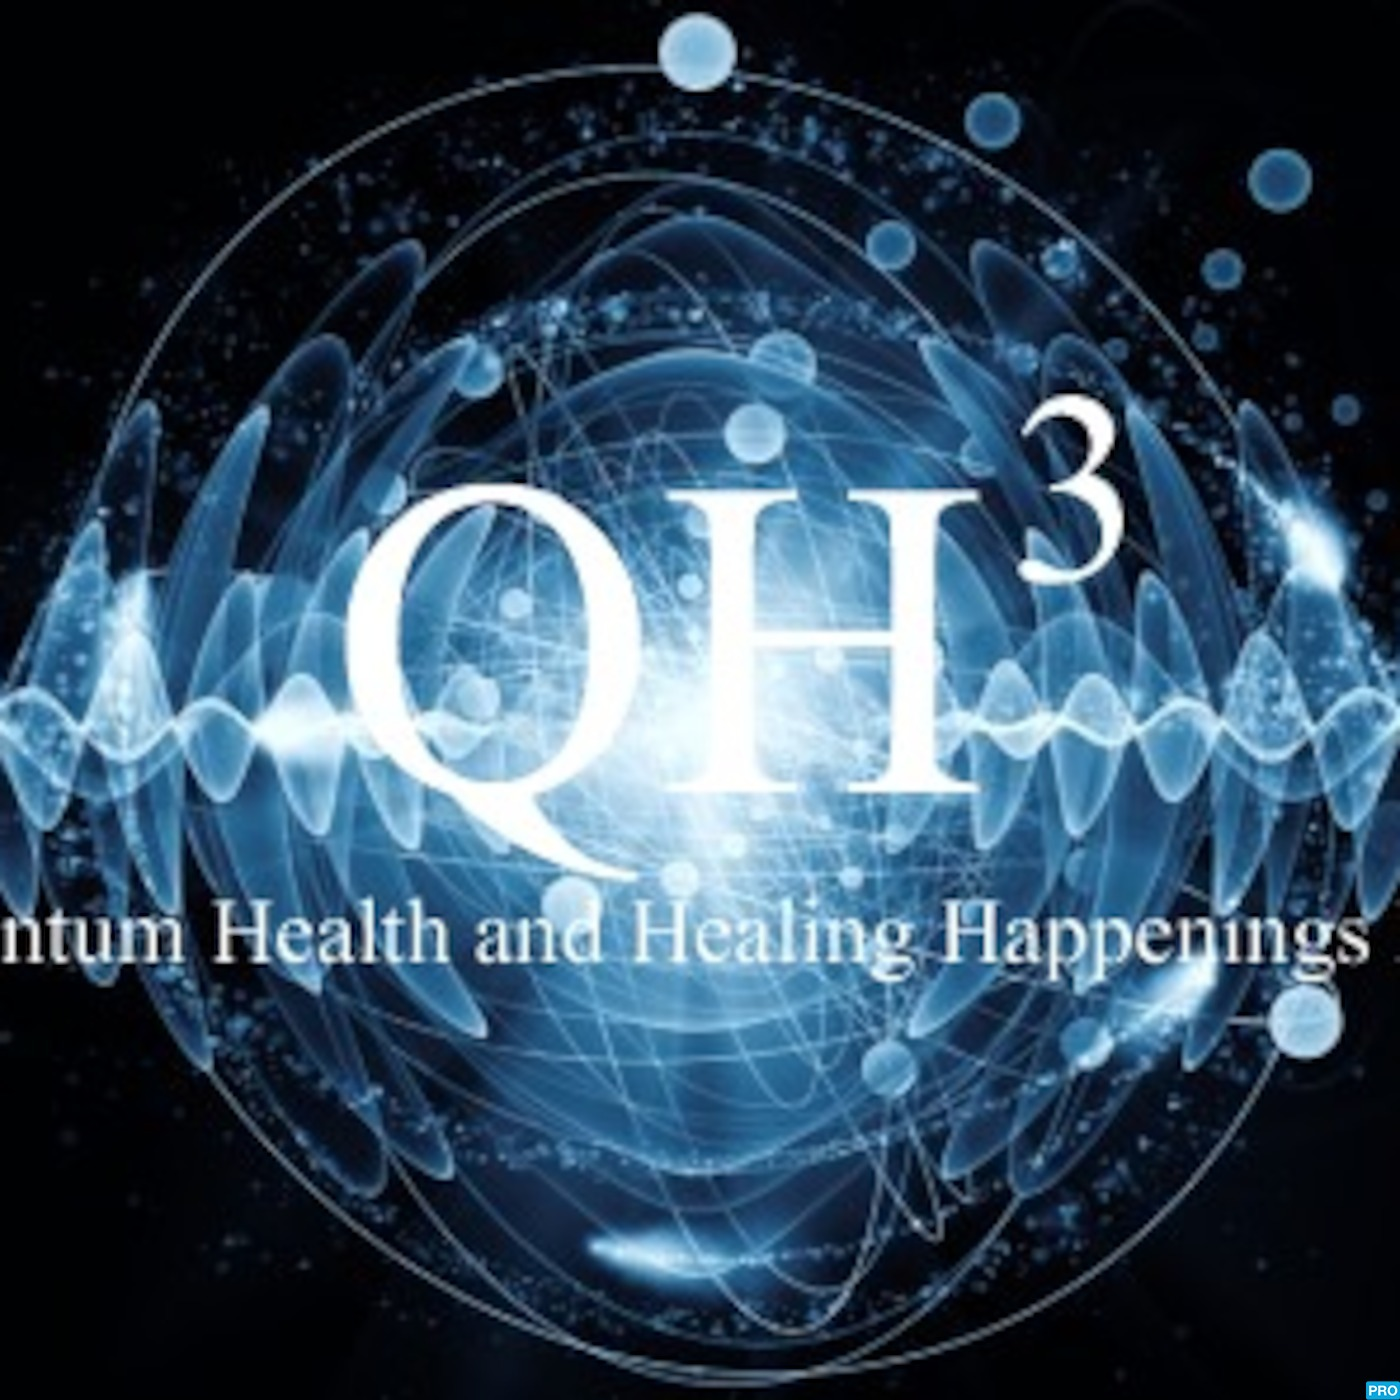 Qh3 - The Quantum Health and Healing Happenings- Podcast